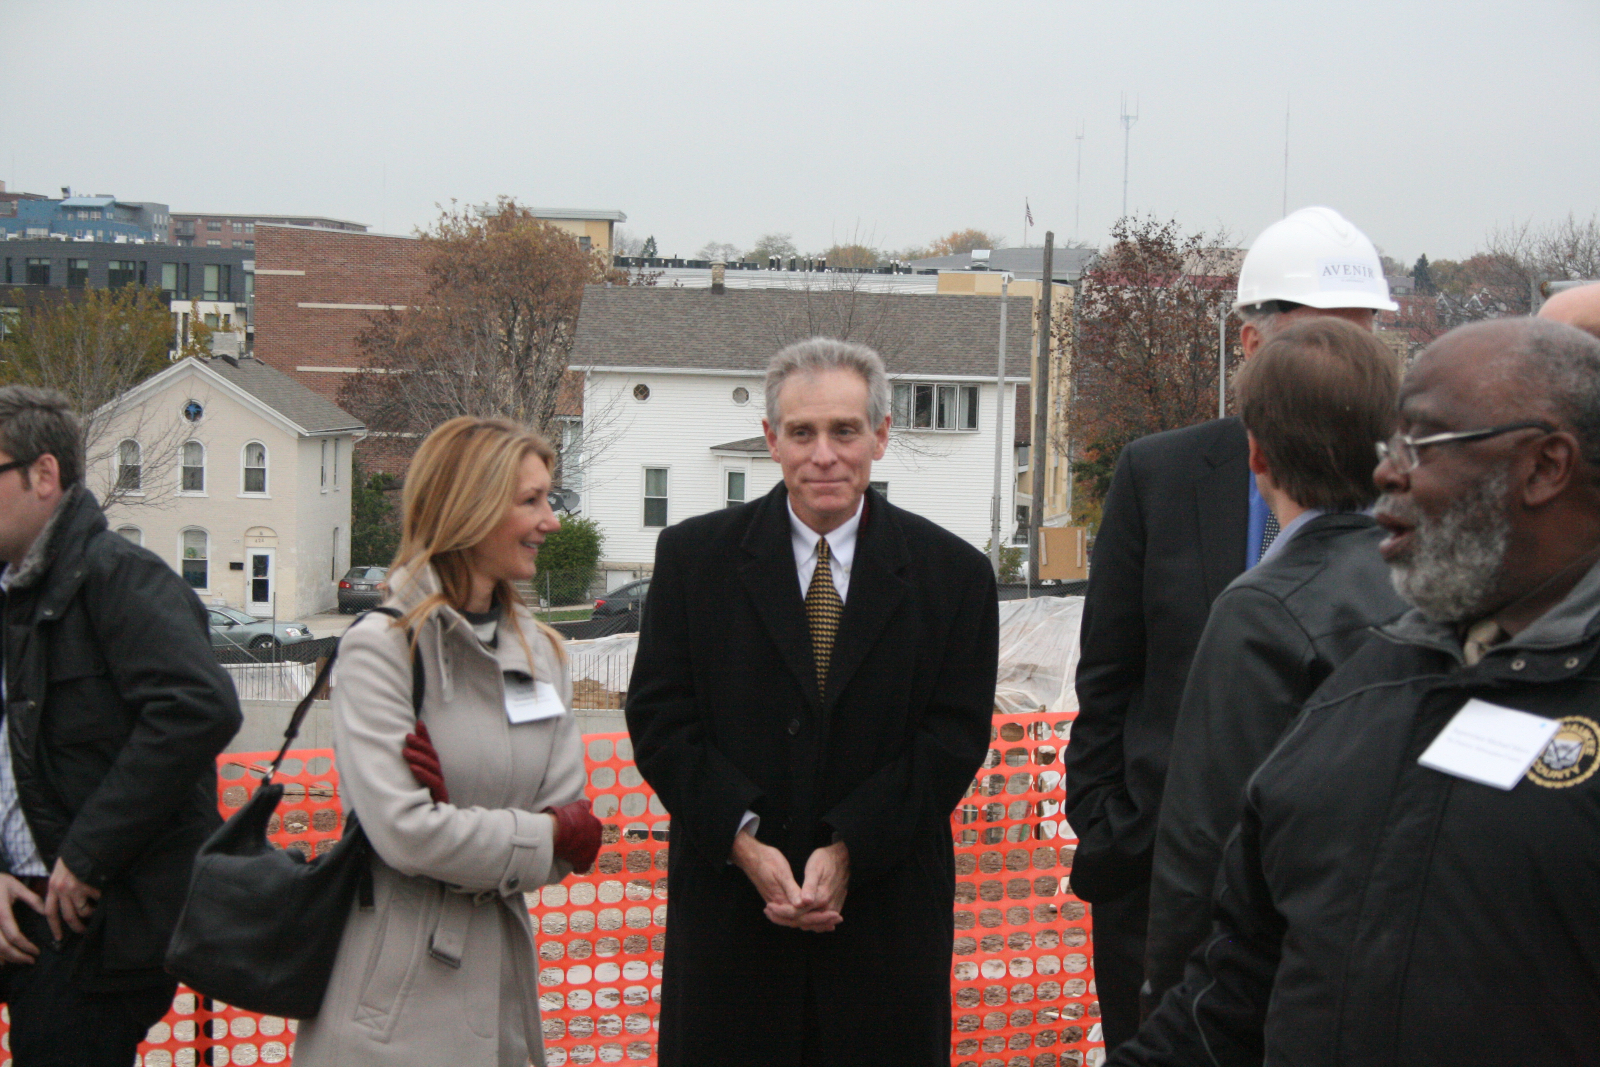 Jeff Fleming at the Avenir groundbreaking.